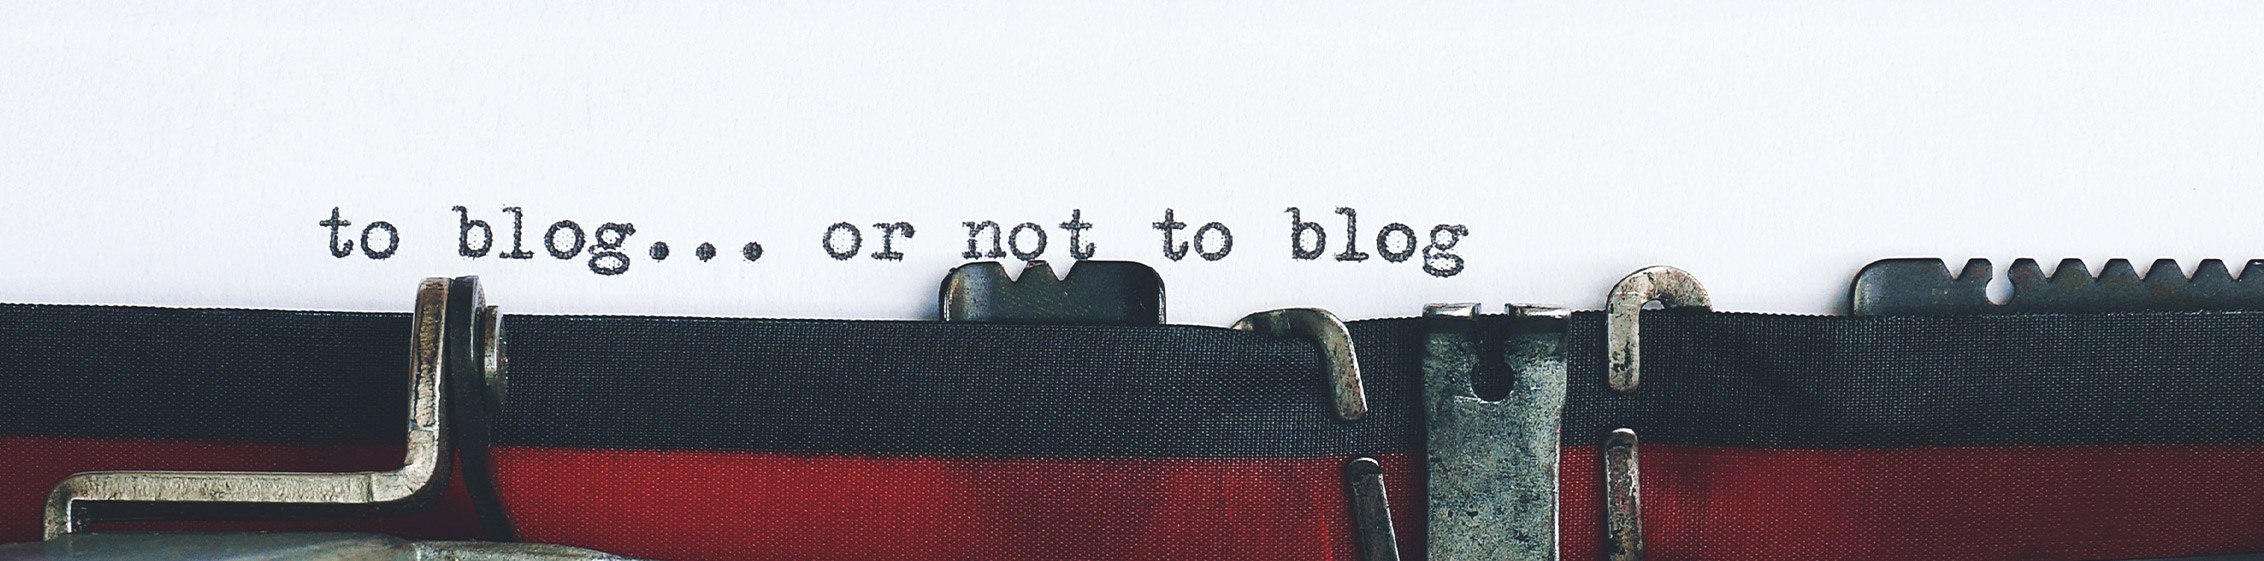 Why Blogging should be an important part of your Digital Marketing strategy